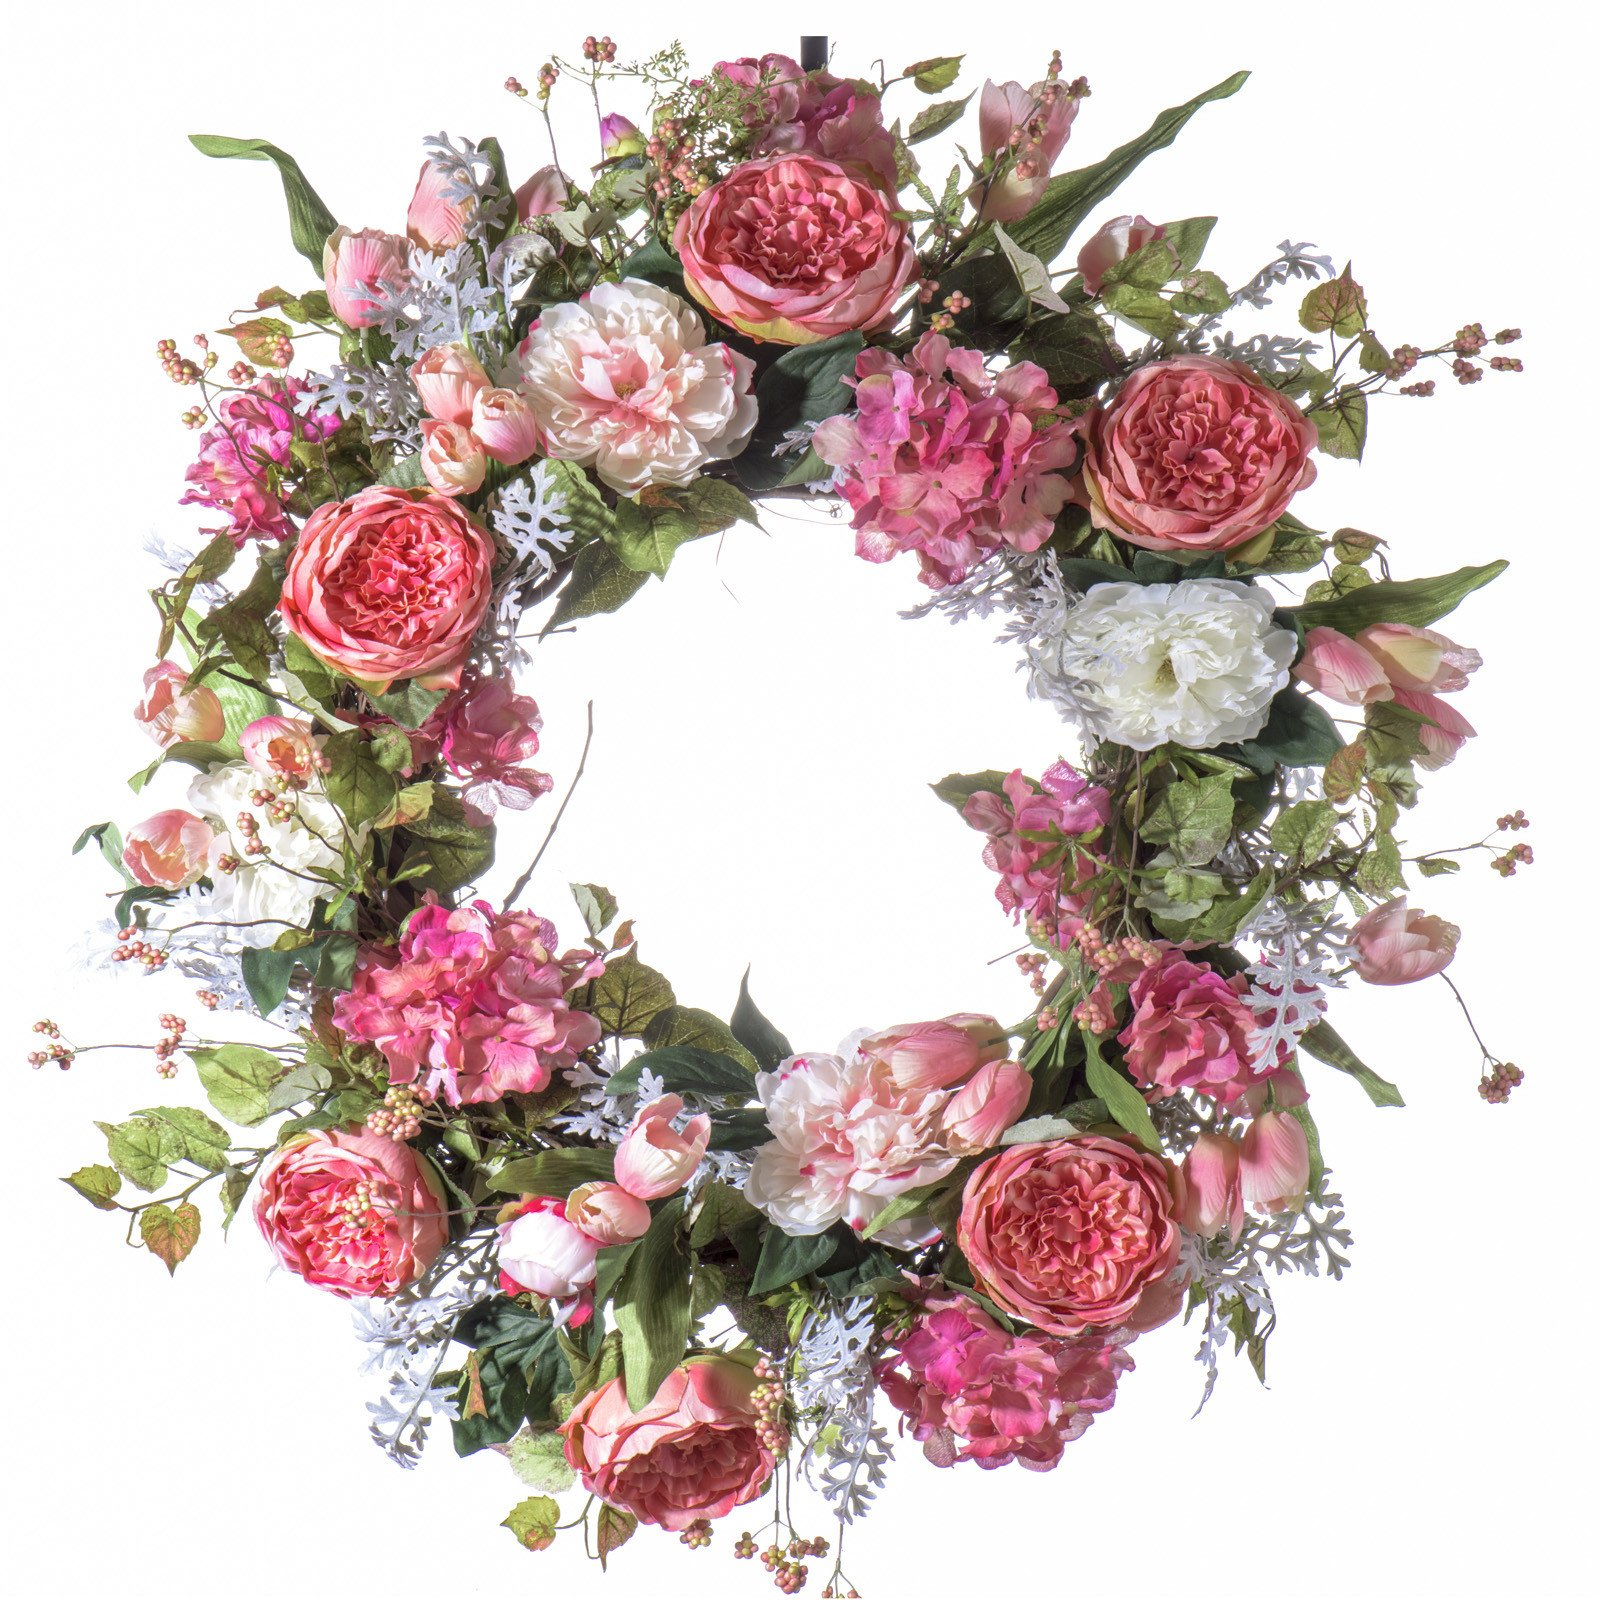 Pink Cabbage Rose Silk Wreath - Use as Spring Wreath, Summer Wreath or Everday Wreath (26 inch) by Darby Creek Trading